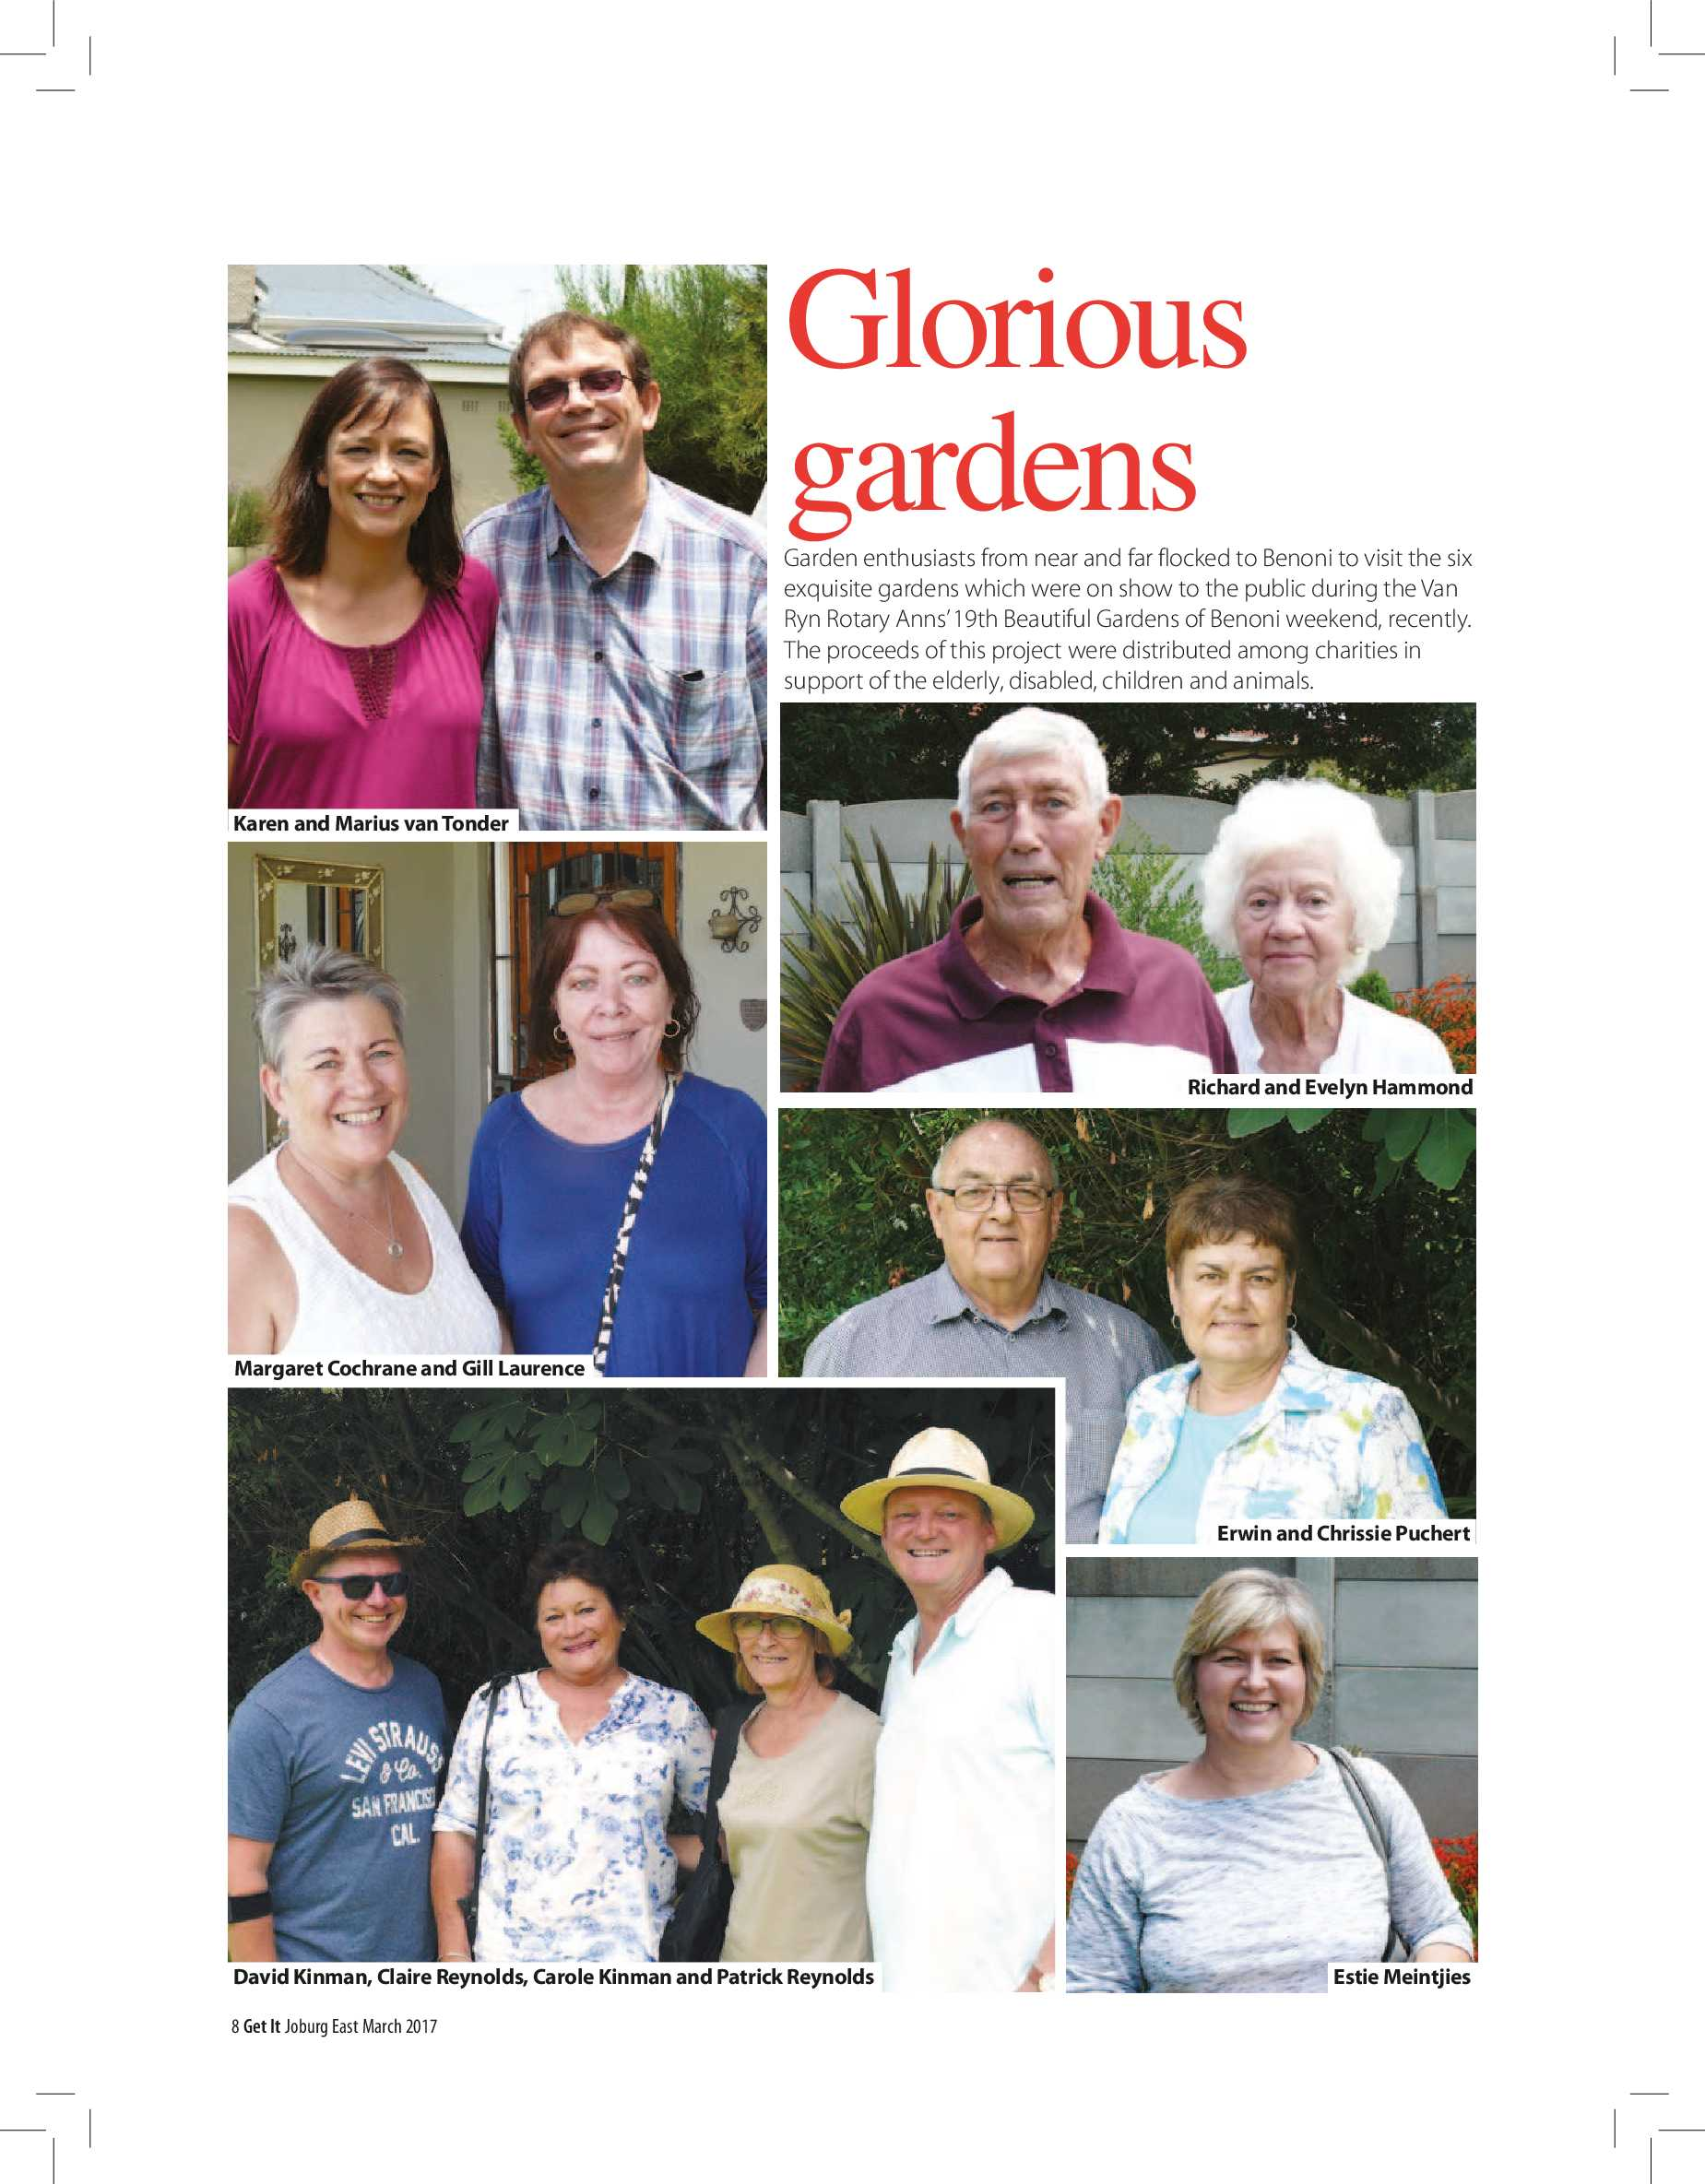 get-east-march-2017-epapers-page-8